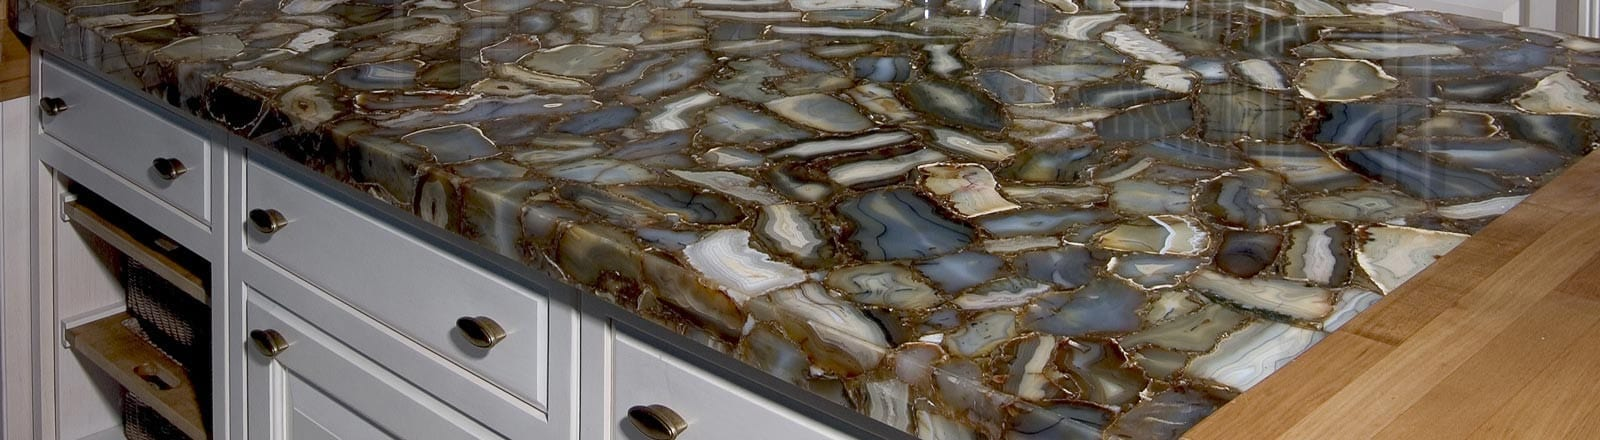 Countertop Repair and Installation by Designer Surfaces in Maryland